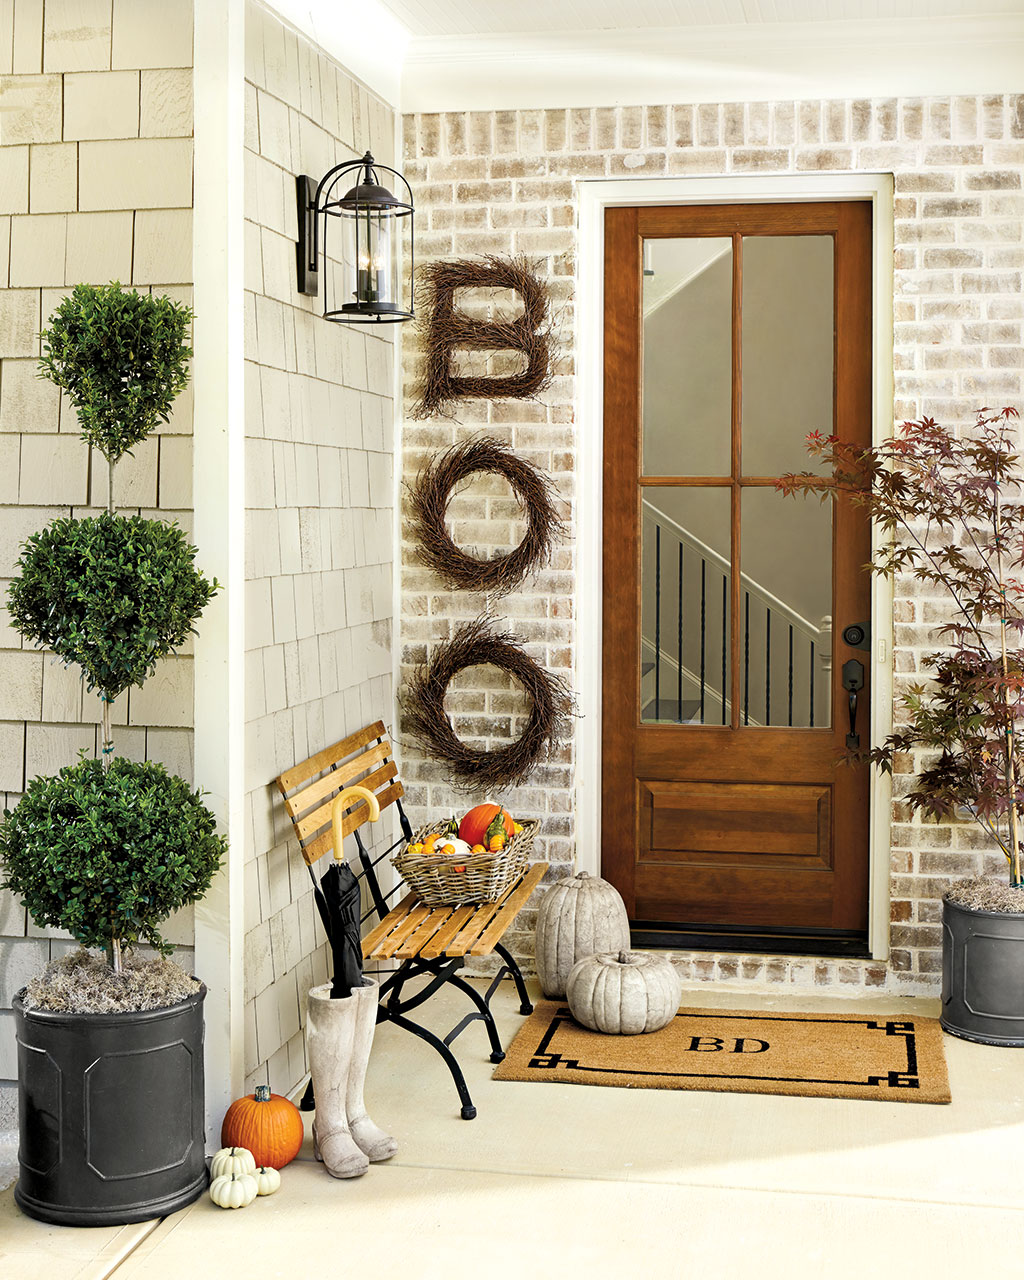 Outdoor Fall Porch Front Door Decoration Ideas Halloween Boo Wreath Stone Pumpkins